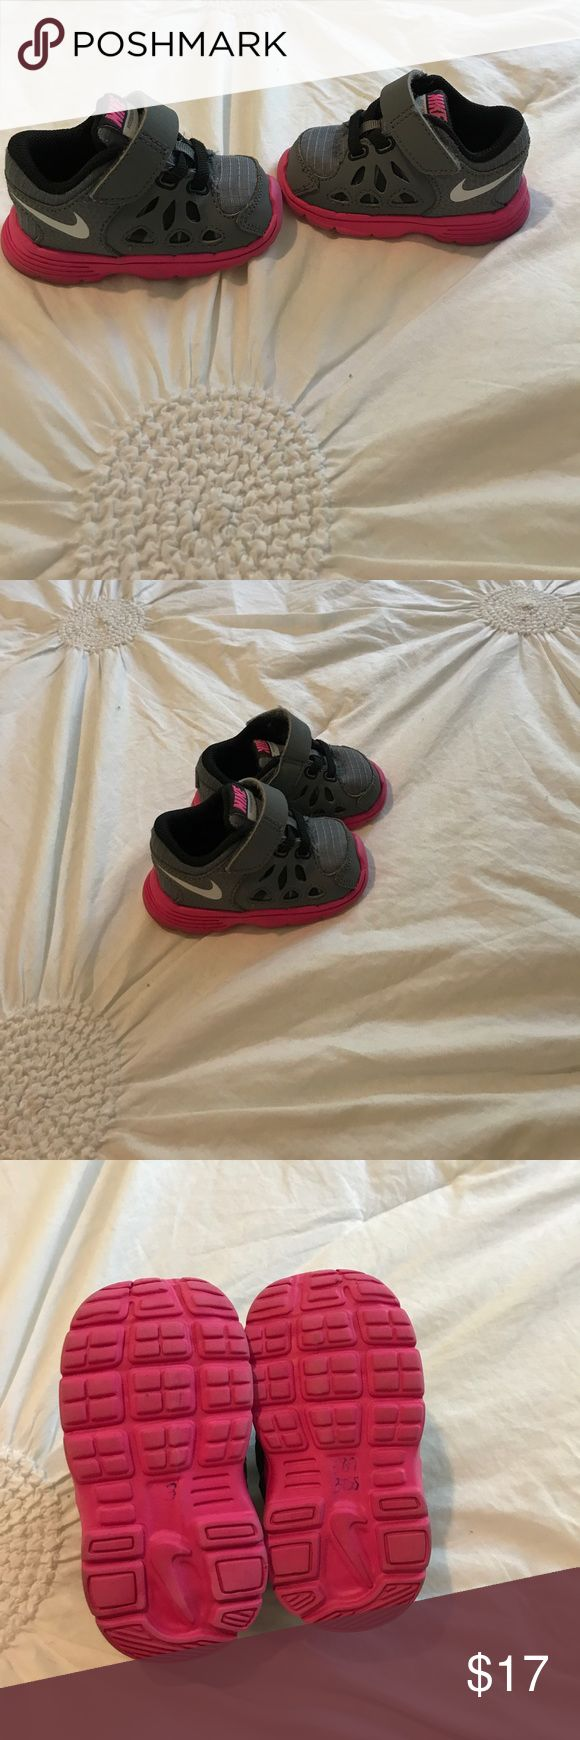 Adorable baby girl Nike shoes size 3C!! Adorable pink and gray Nike baby girl shoes size 3C in amazing used condition small SKU number written on the bottom of the shoe as shown in photo still in great condition. Nike Shoes Sneakers